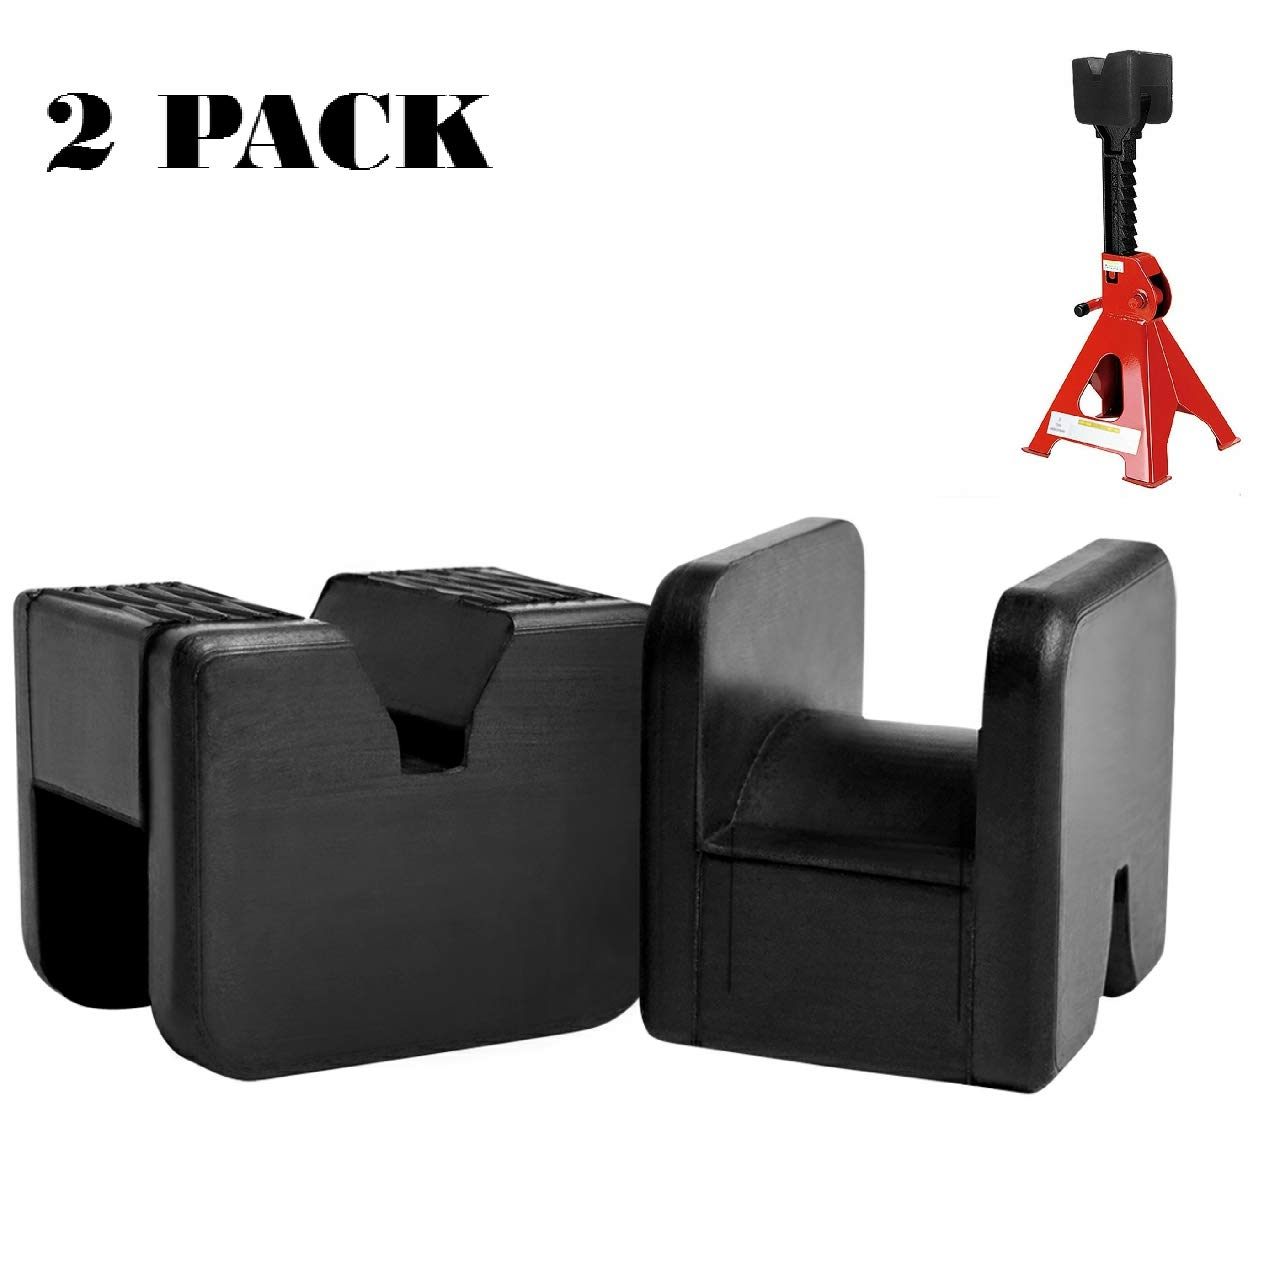 2 Pack Jack Pad Adapter Rubber Jack Pads Slotted Frame for Jack Stand General-Purpose Rubber by SuboTech